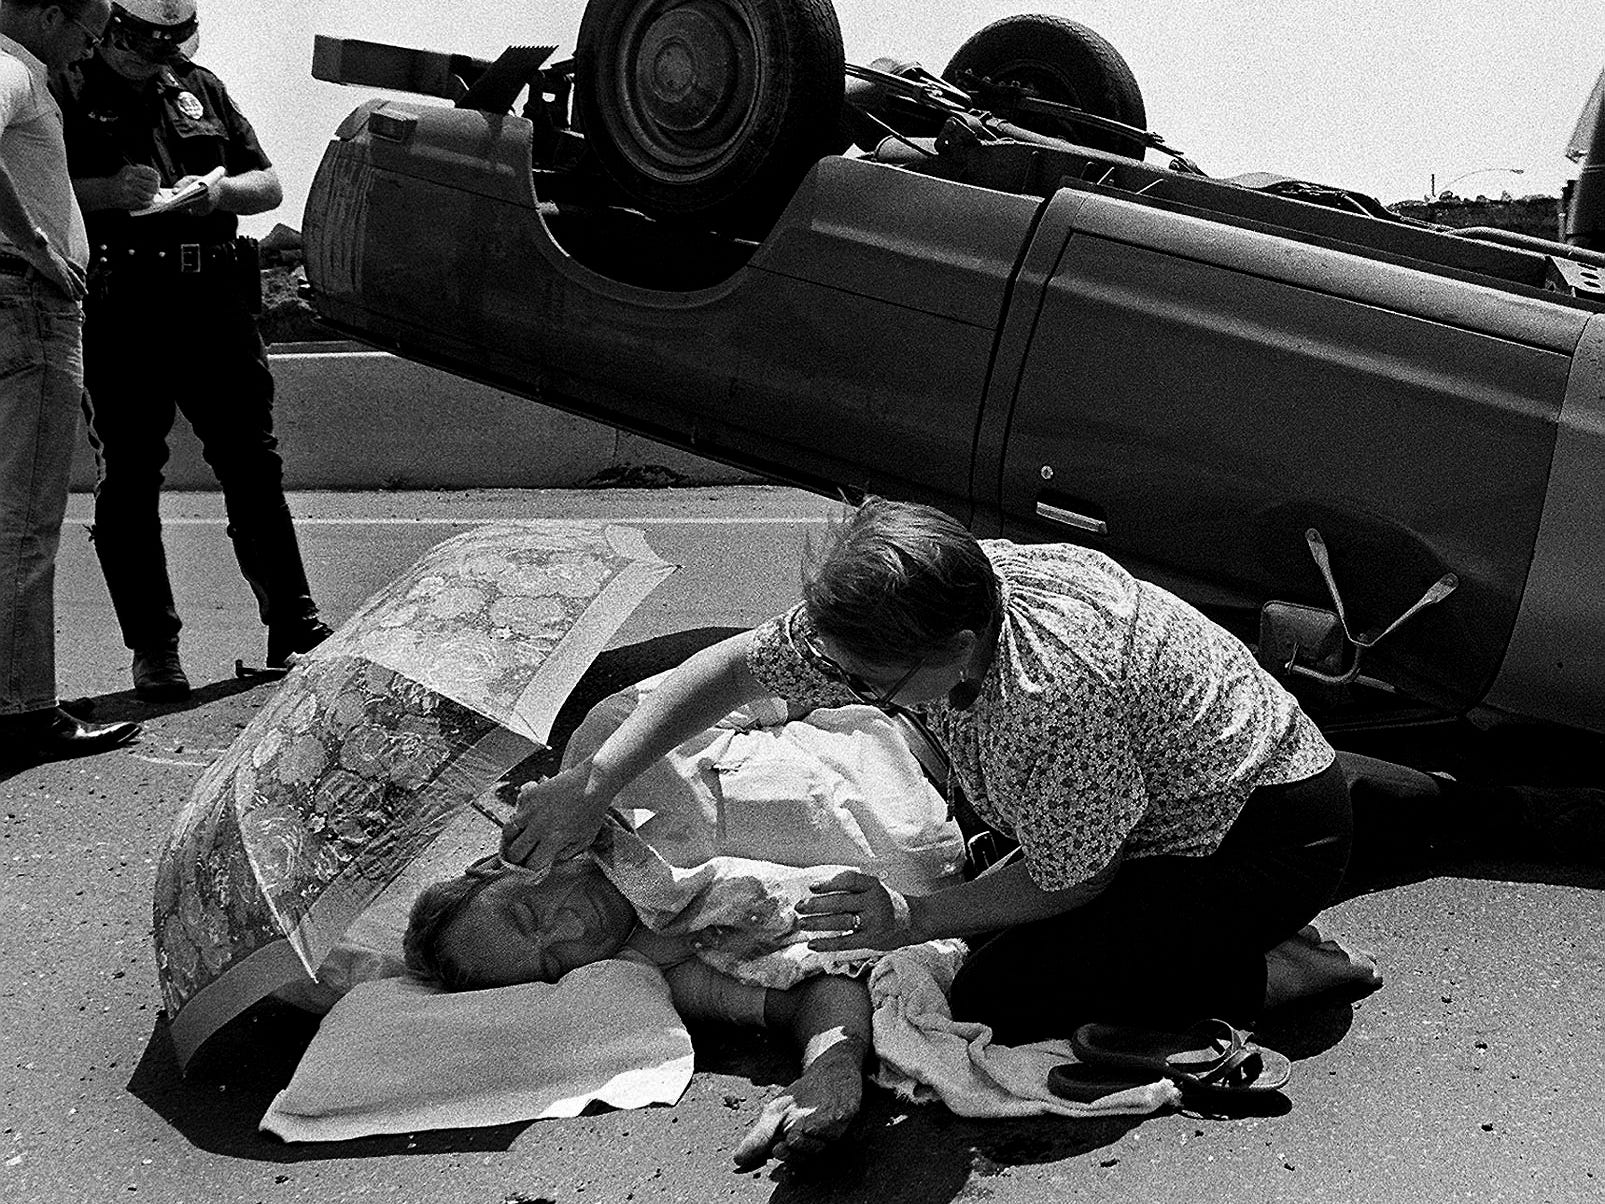 James Payne, 55, gets a helping hand from a passing motorist after his truck overturned on I-40 east near Seventeenth Street. Payne was treated at Baptist after the 12:25 p.m. accident July 2, 1980. Nell Jones traveling from N.C. to Texas stopped and placed the umbrella over Payne and a pillow under his head until an ambulance arrived.